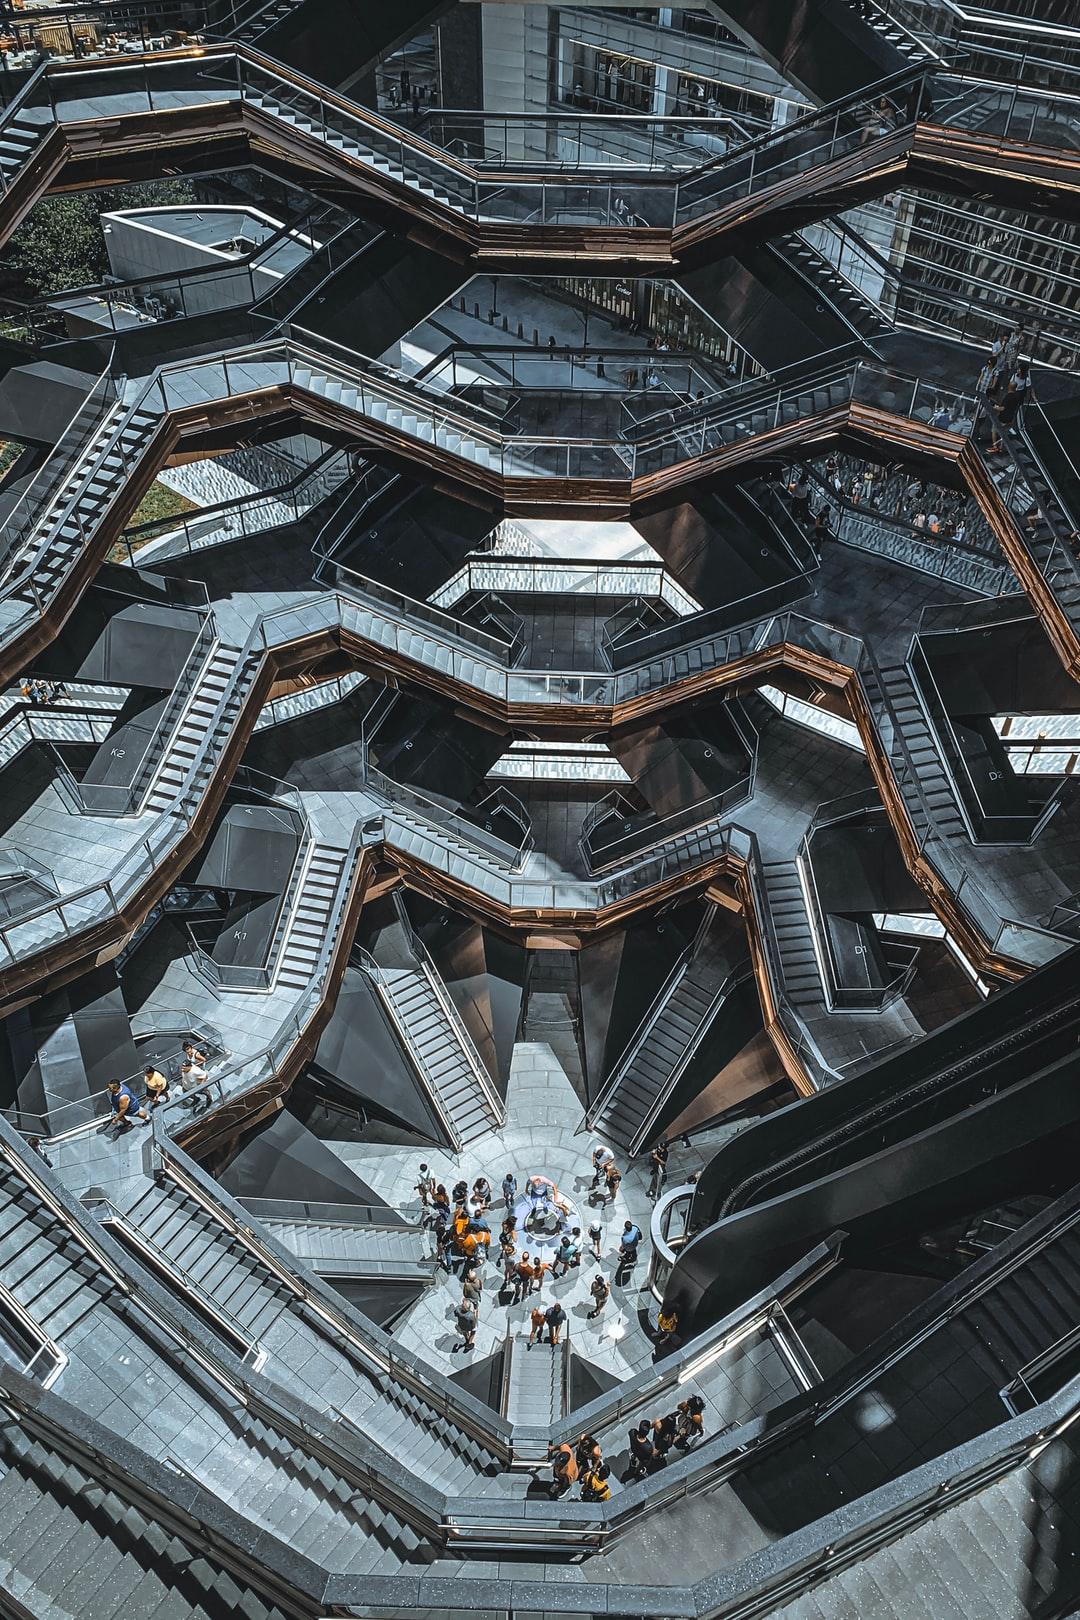 The Vessel (from above) in New York City